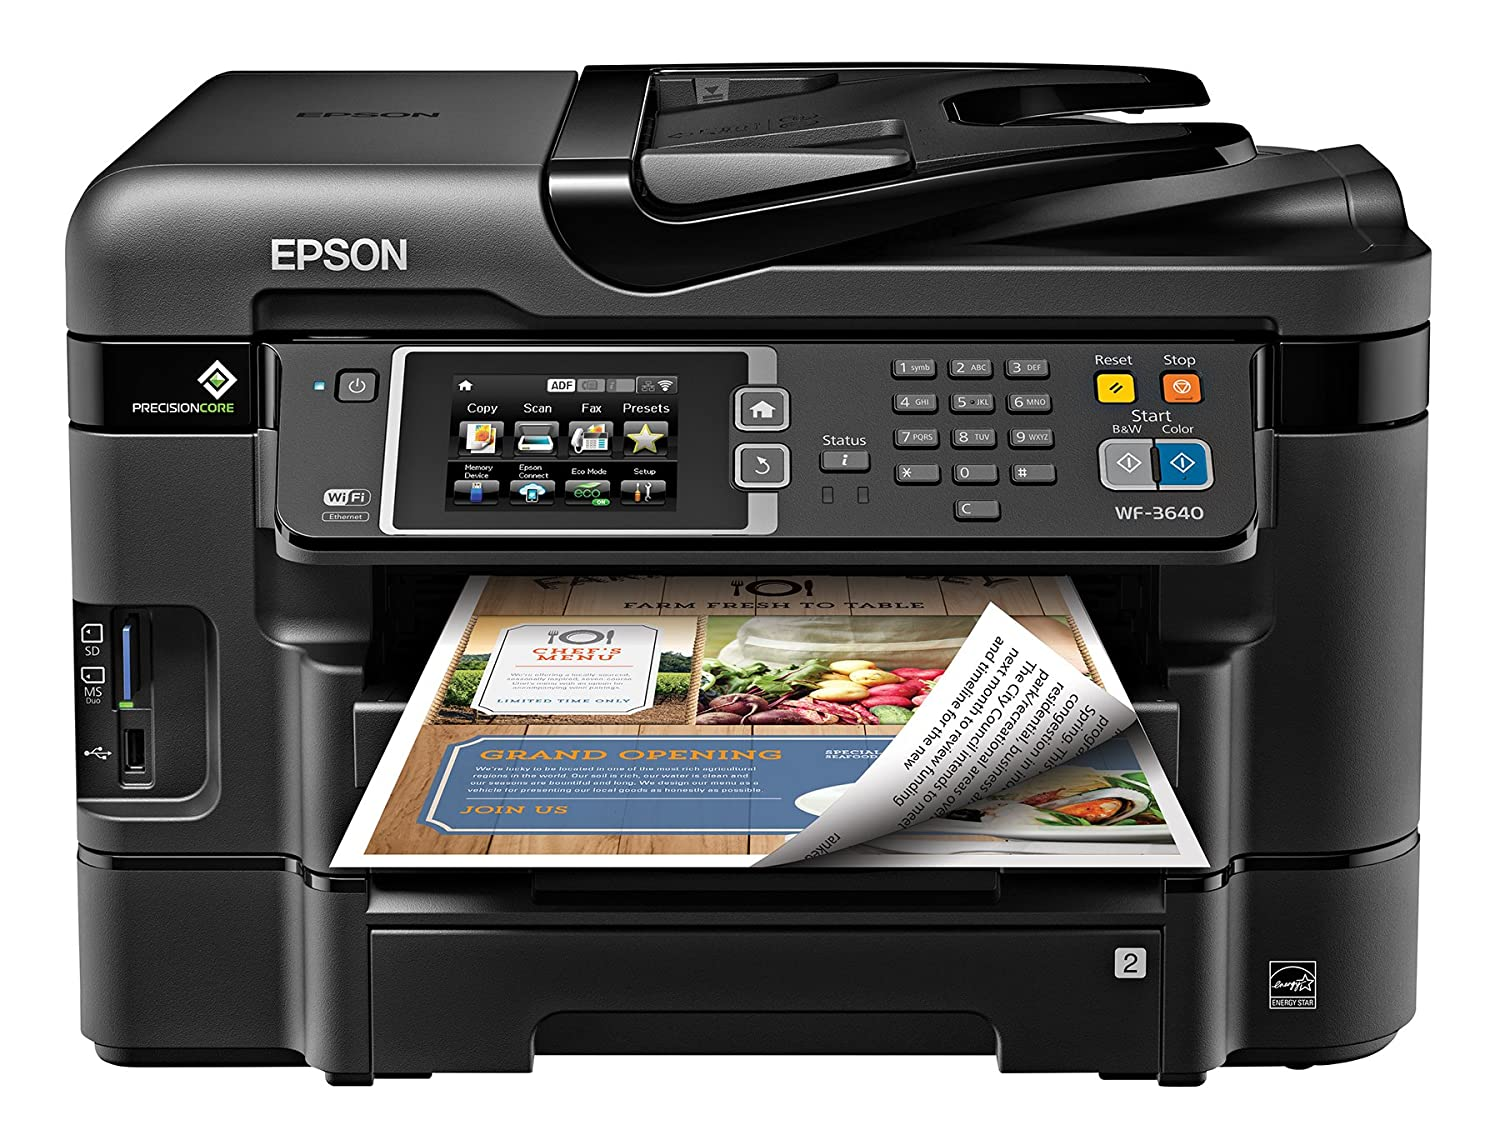 Amazon.com: Epson WorkForce WF-3640 Wireless Color All-in-One Inkjet  Printer with Scanner and Copier, Amazon Dash Replenishment Enabled:  Electronics